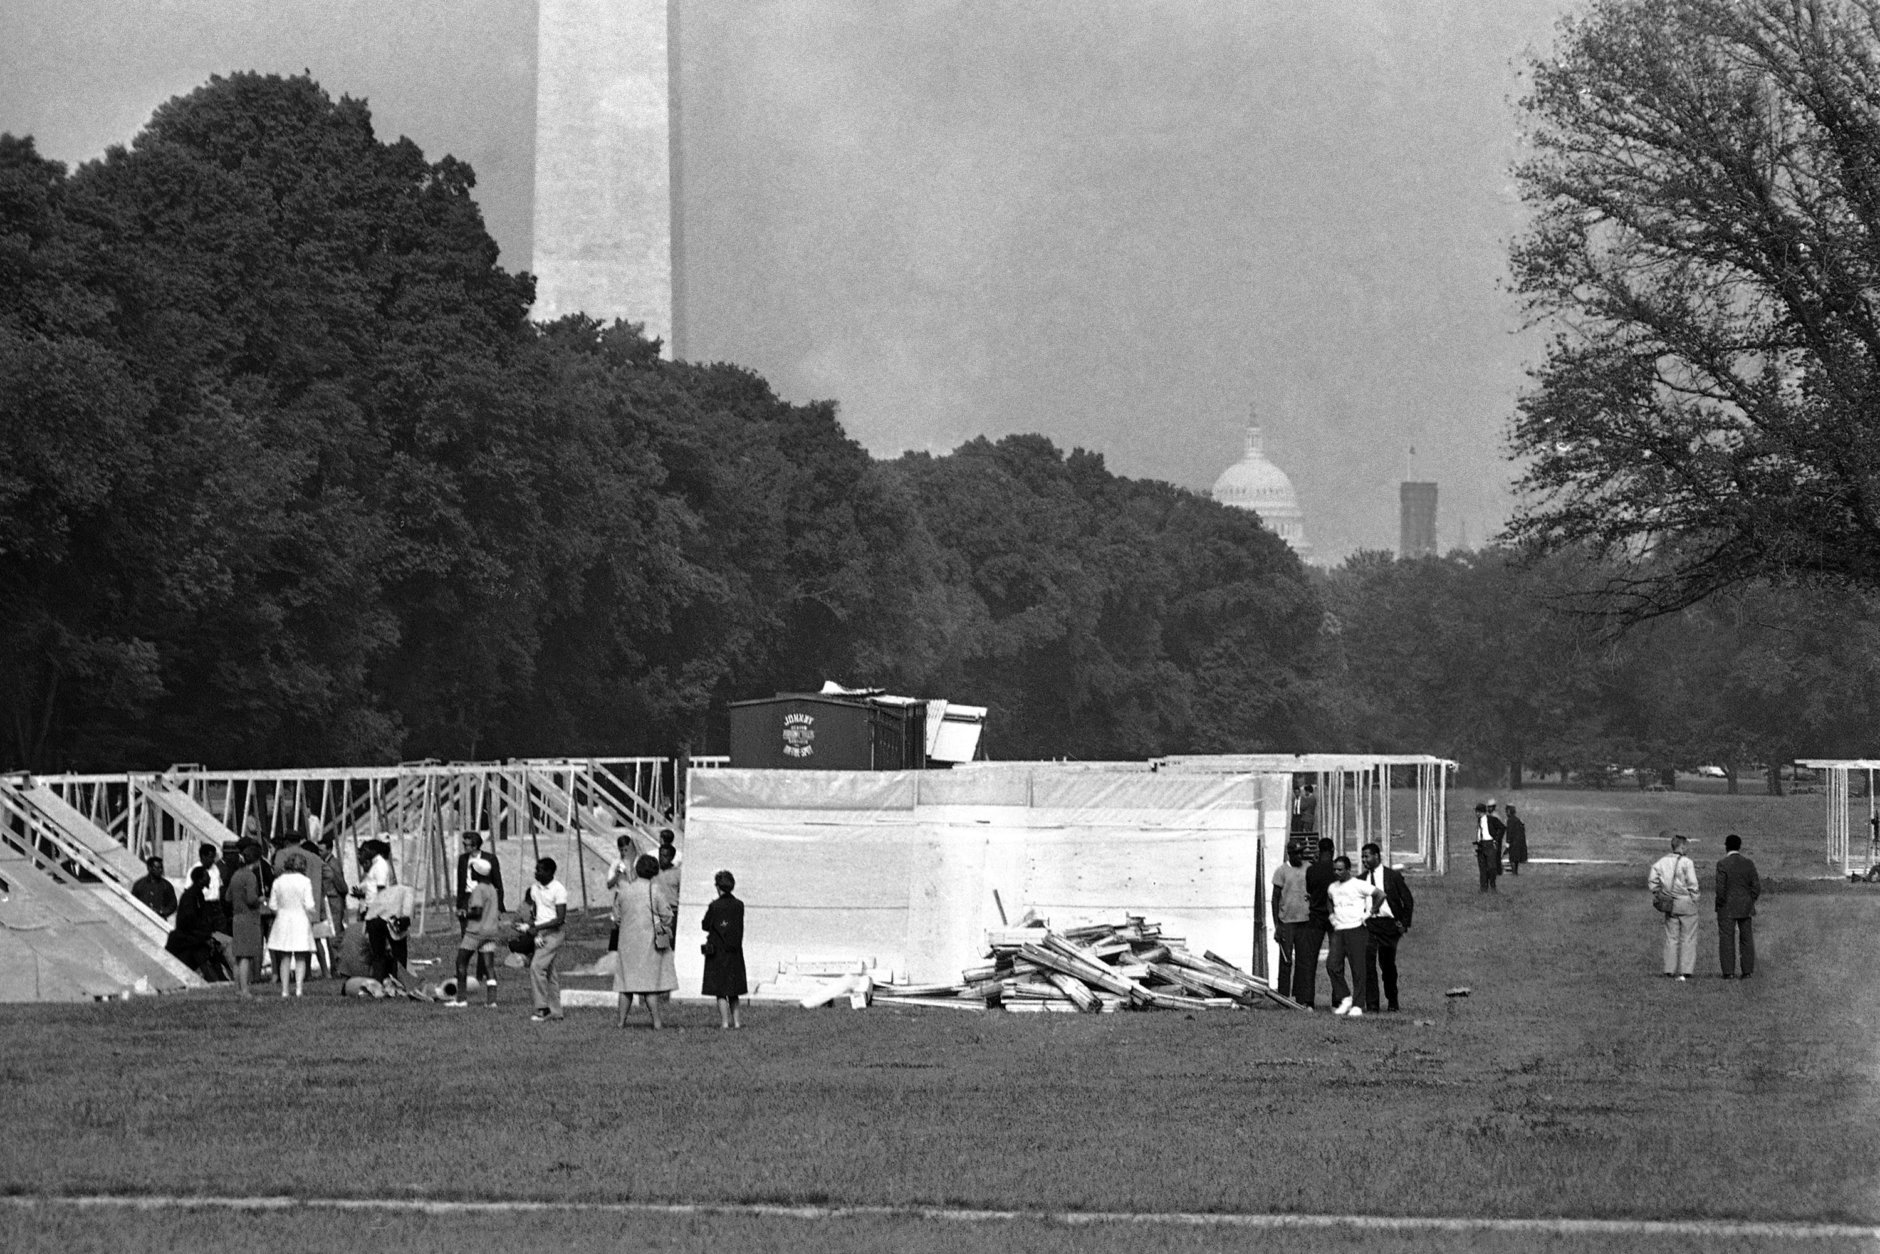 Workmen set up flooring and A-frames for the wooden camp near Lincoln Memorial to house the Poor People's Campaign demonstrators in Washington, May 13, 1968. A federal permit allows the demonstrators to occupy the 15-acre area until on June 16 and limits occupants to 3,000. In background is the Washington Monument. (AP Photo/Bob Schutz)